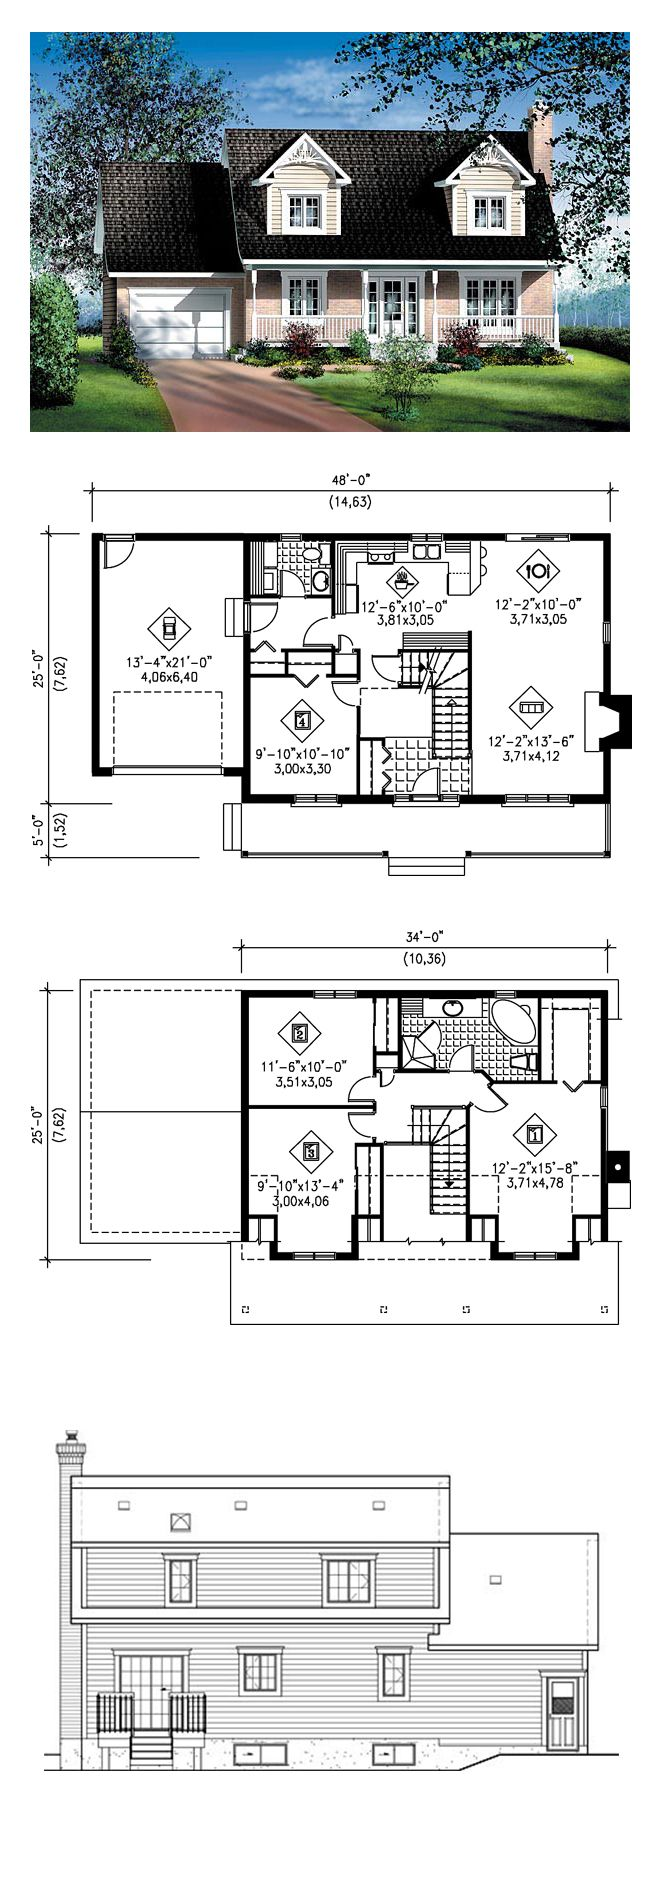 Cape cod house plan 49687 total living area 1564 sq ft for Cape code house plans